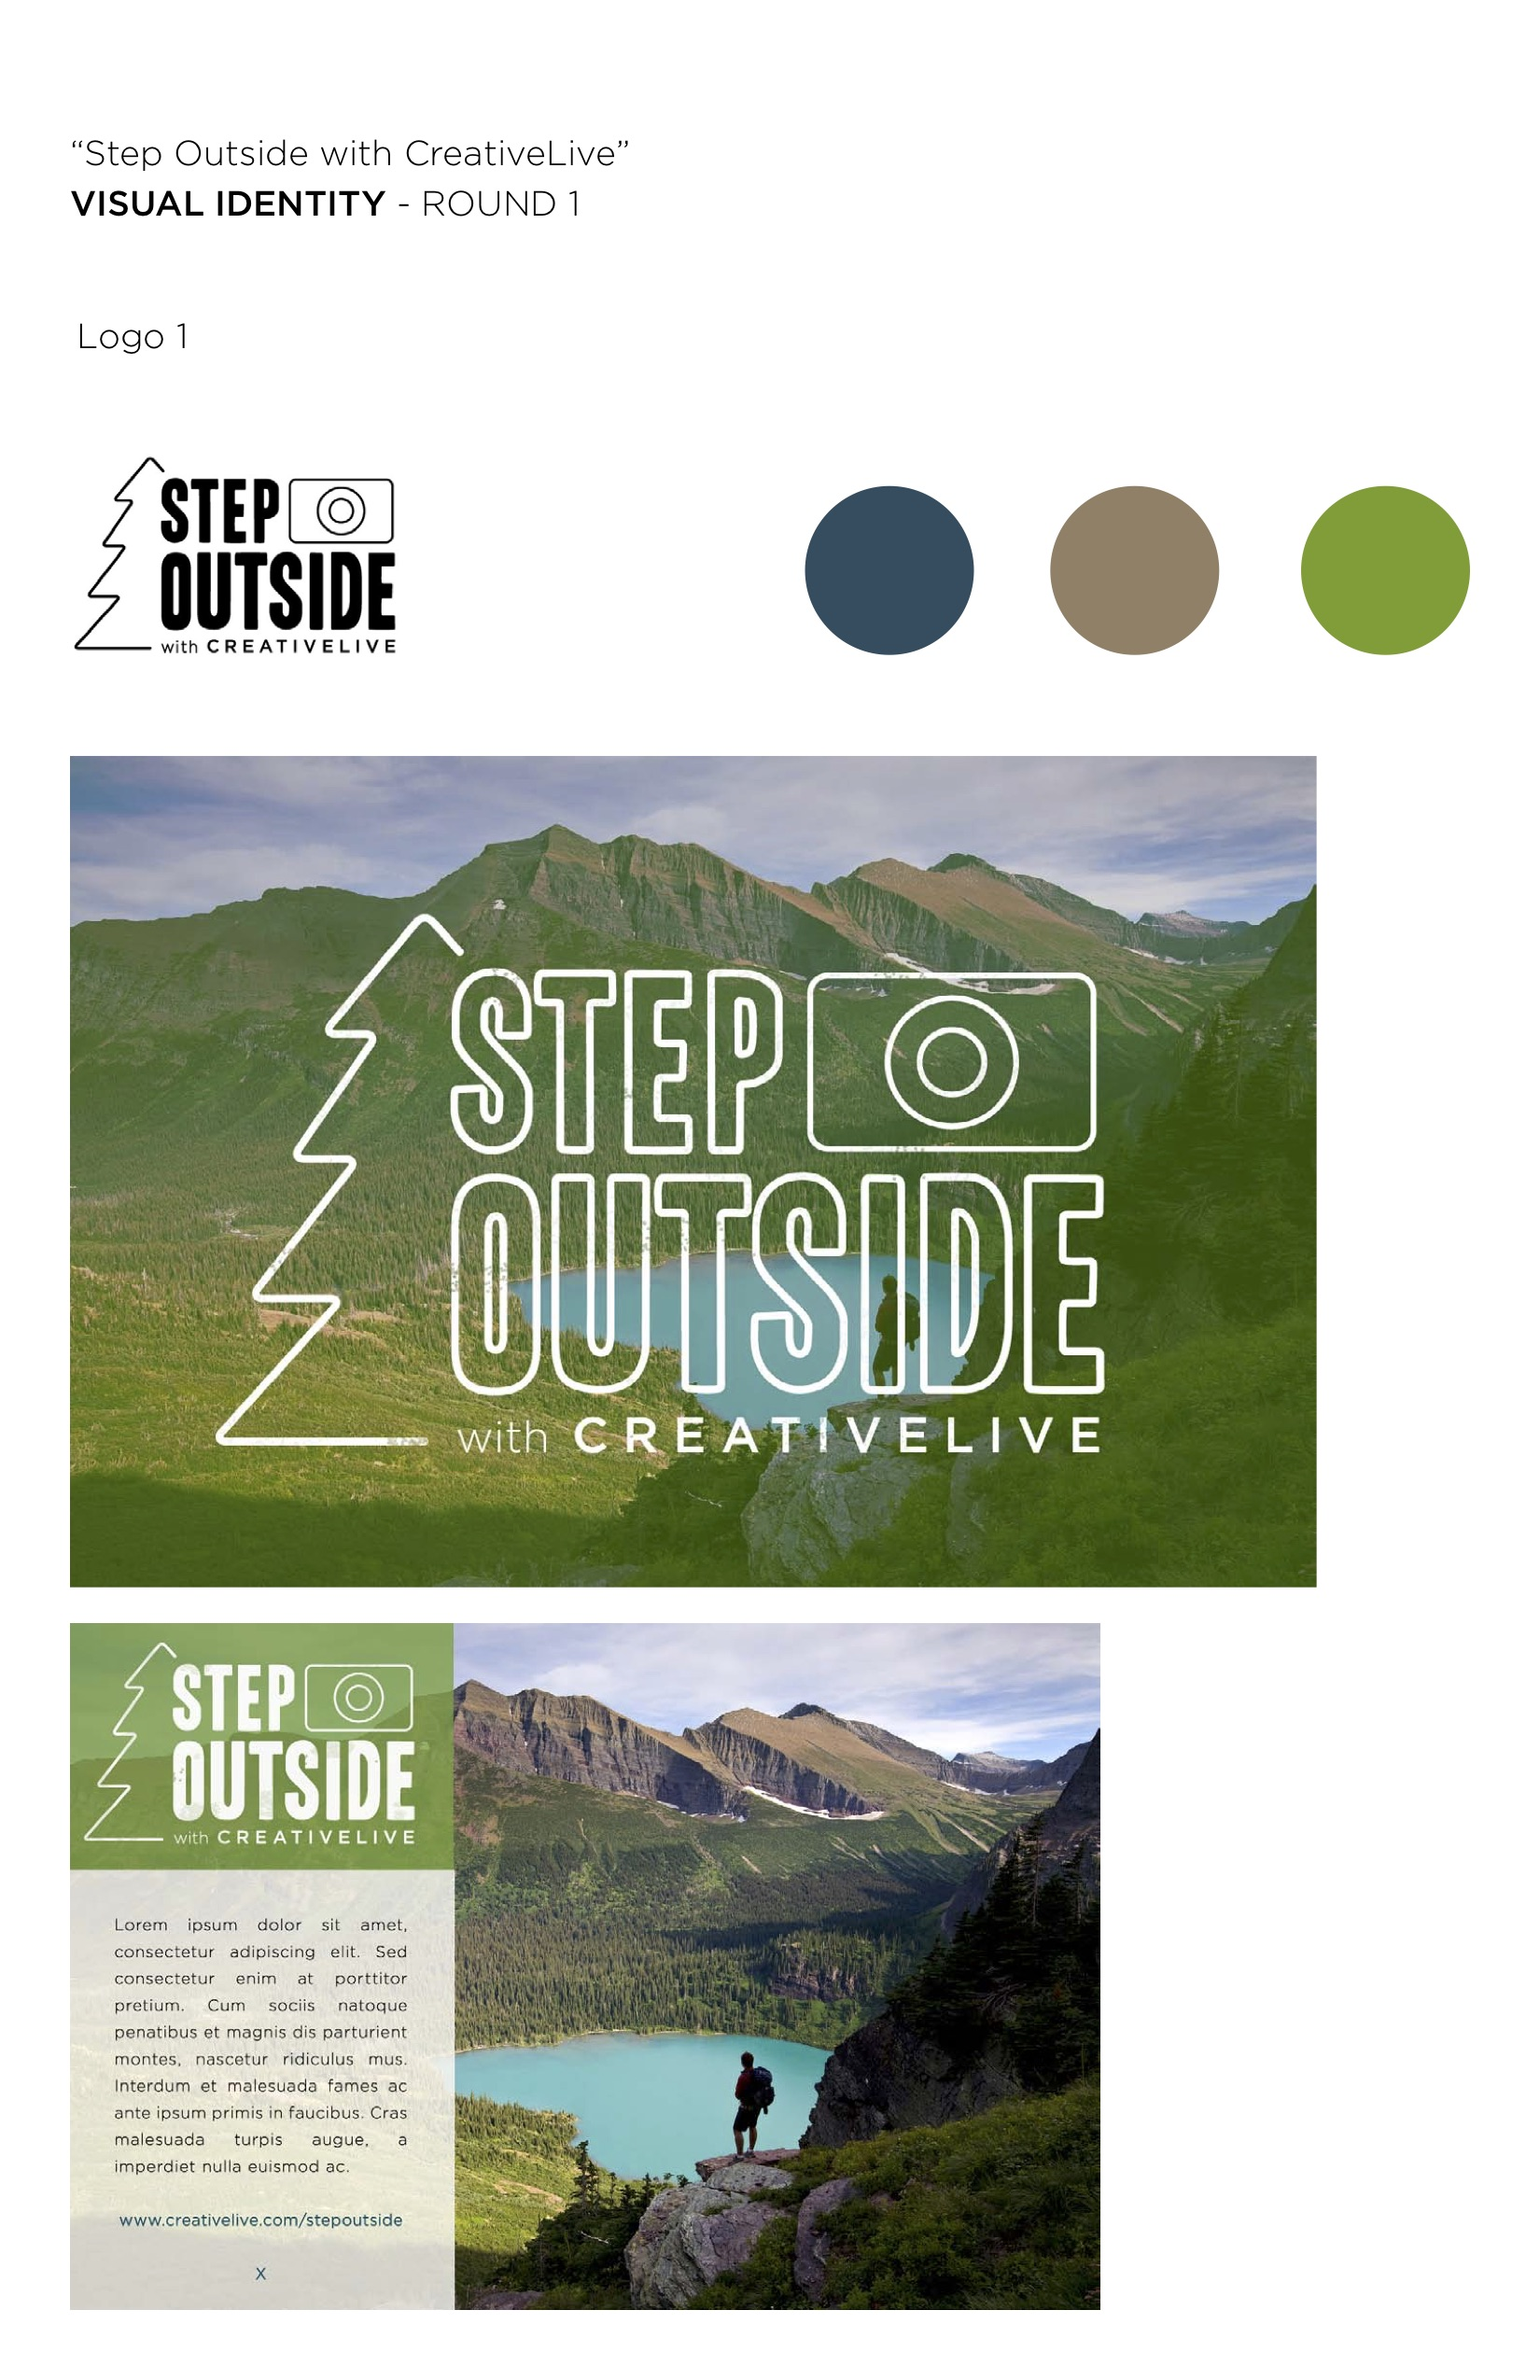 StepOutside_VisualIdentity-Round1 1.jpg